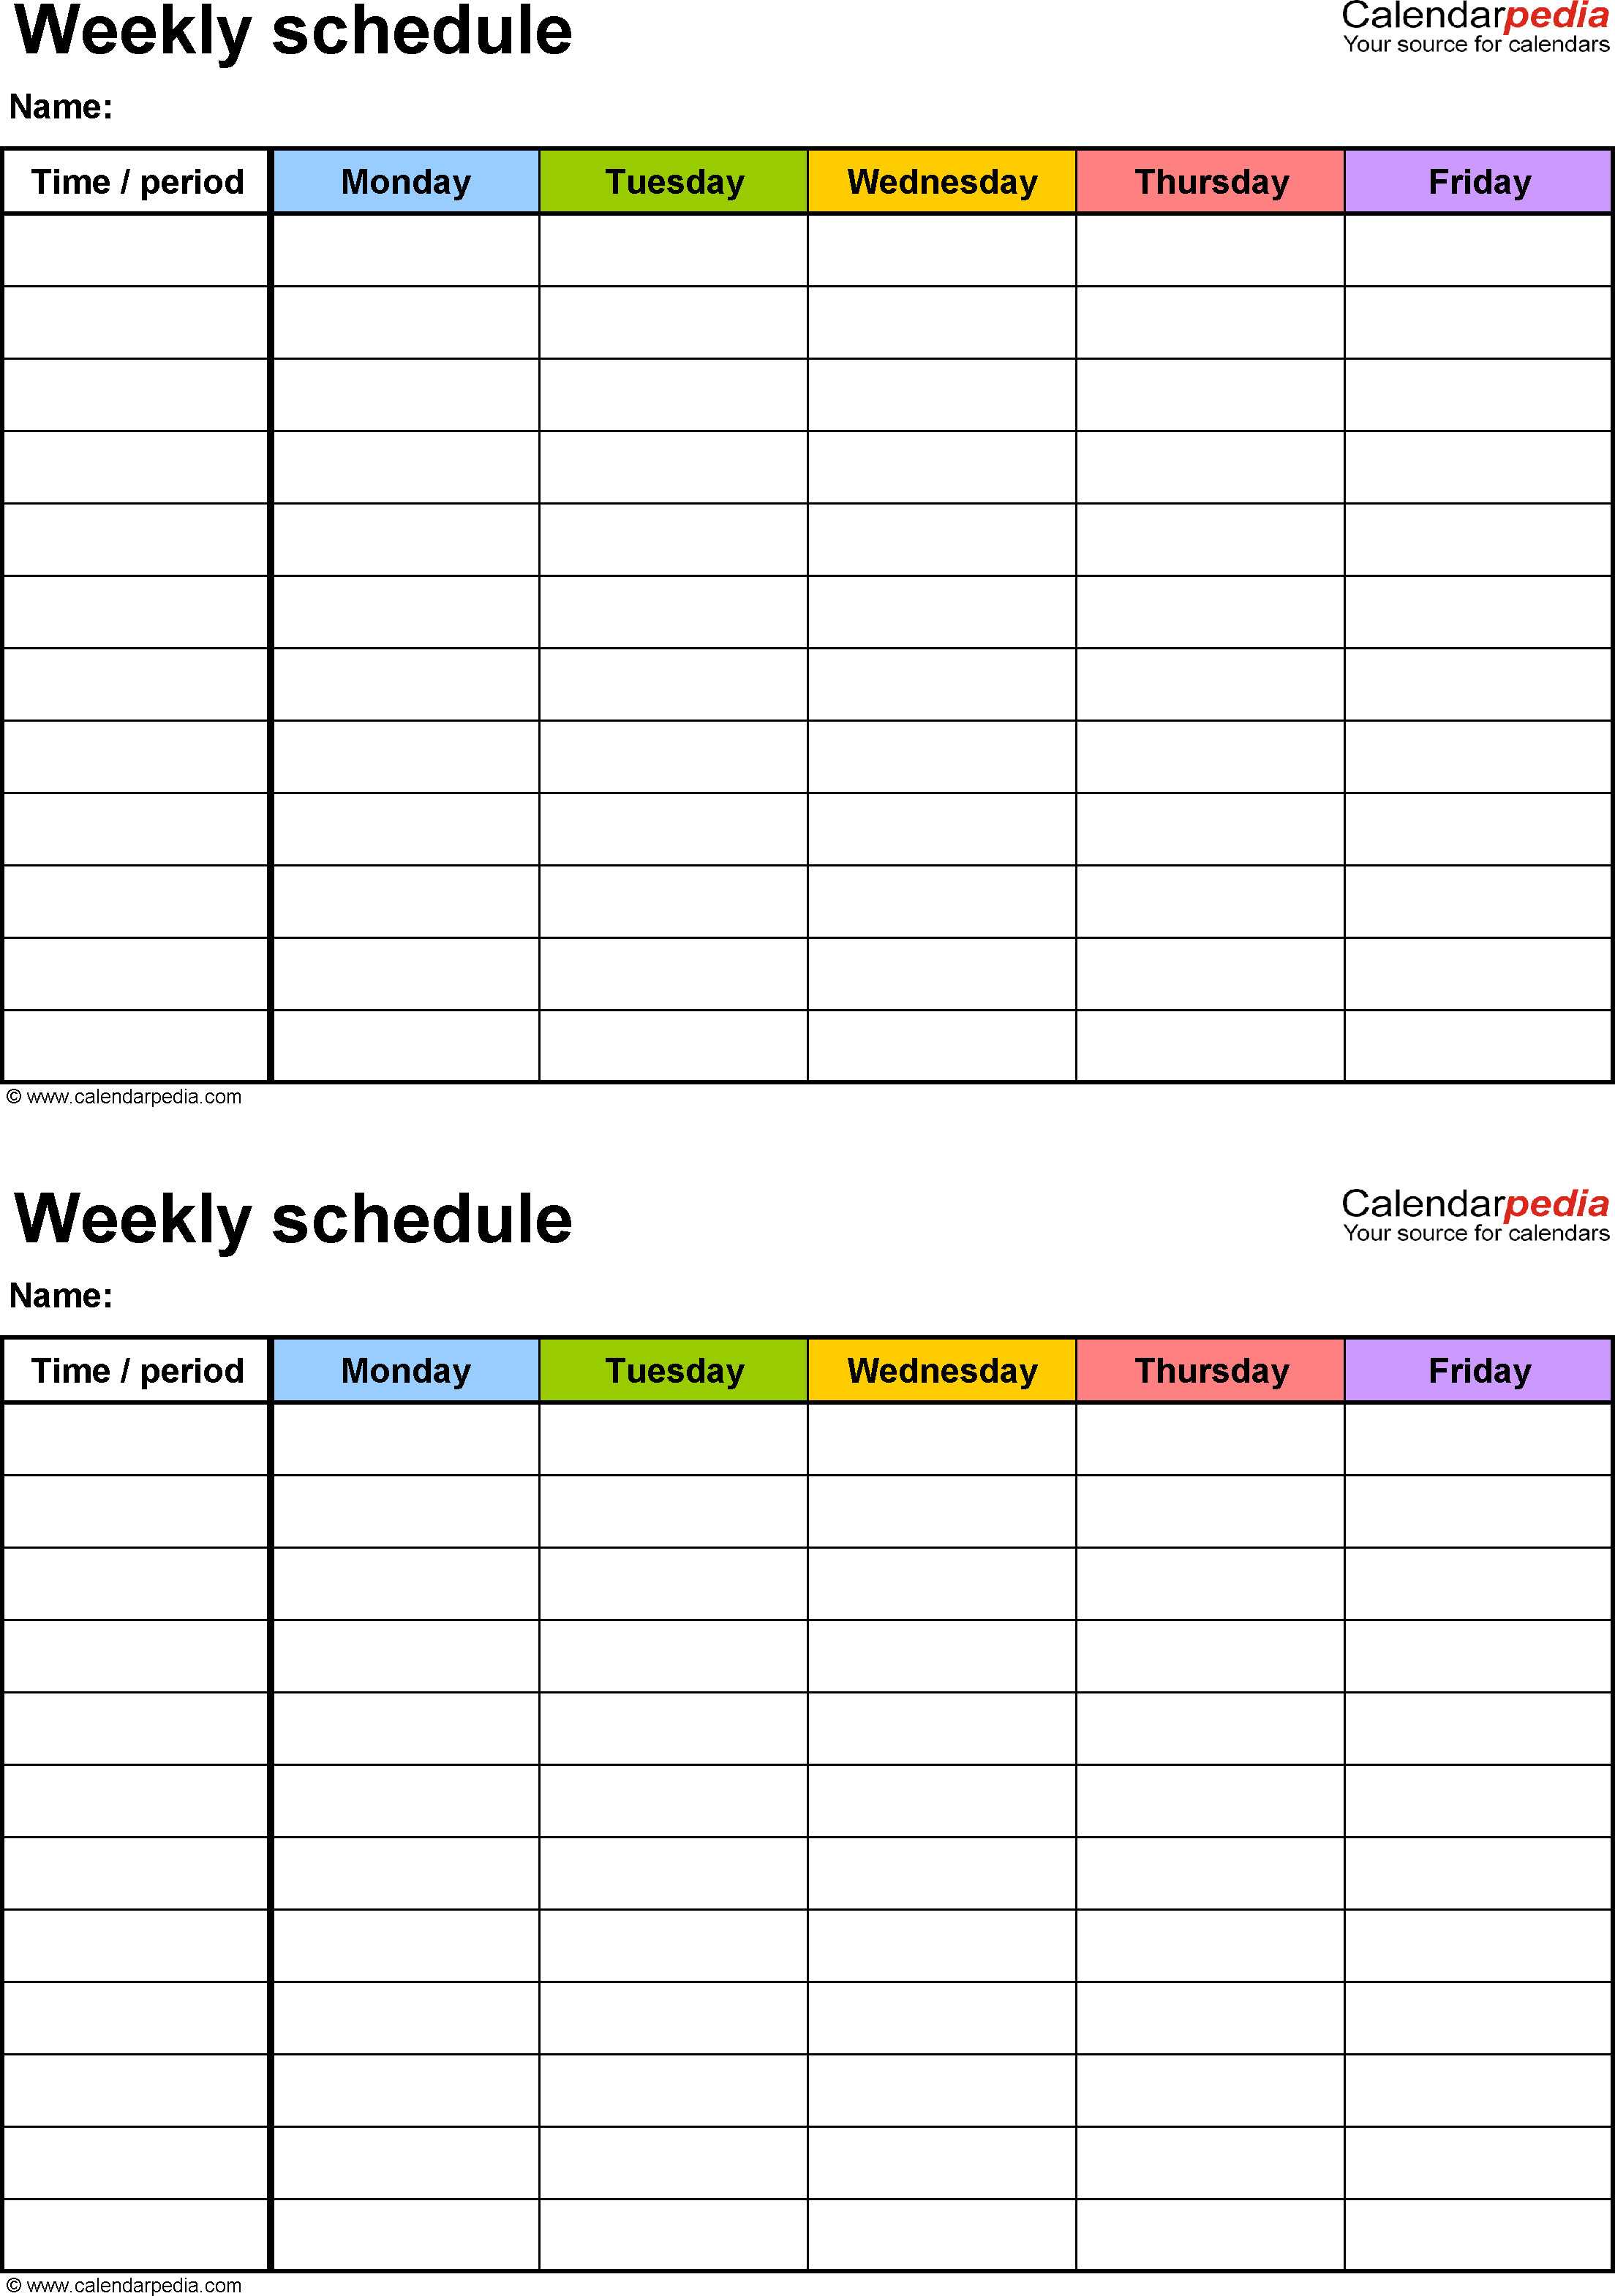 Daily Planner Template Excel Weekly Schedule Template for Excel Version 3 2 Schedules